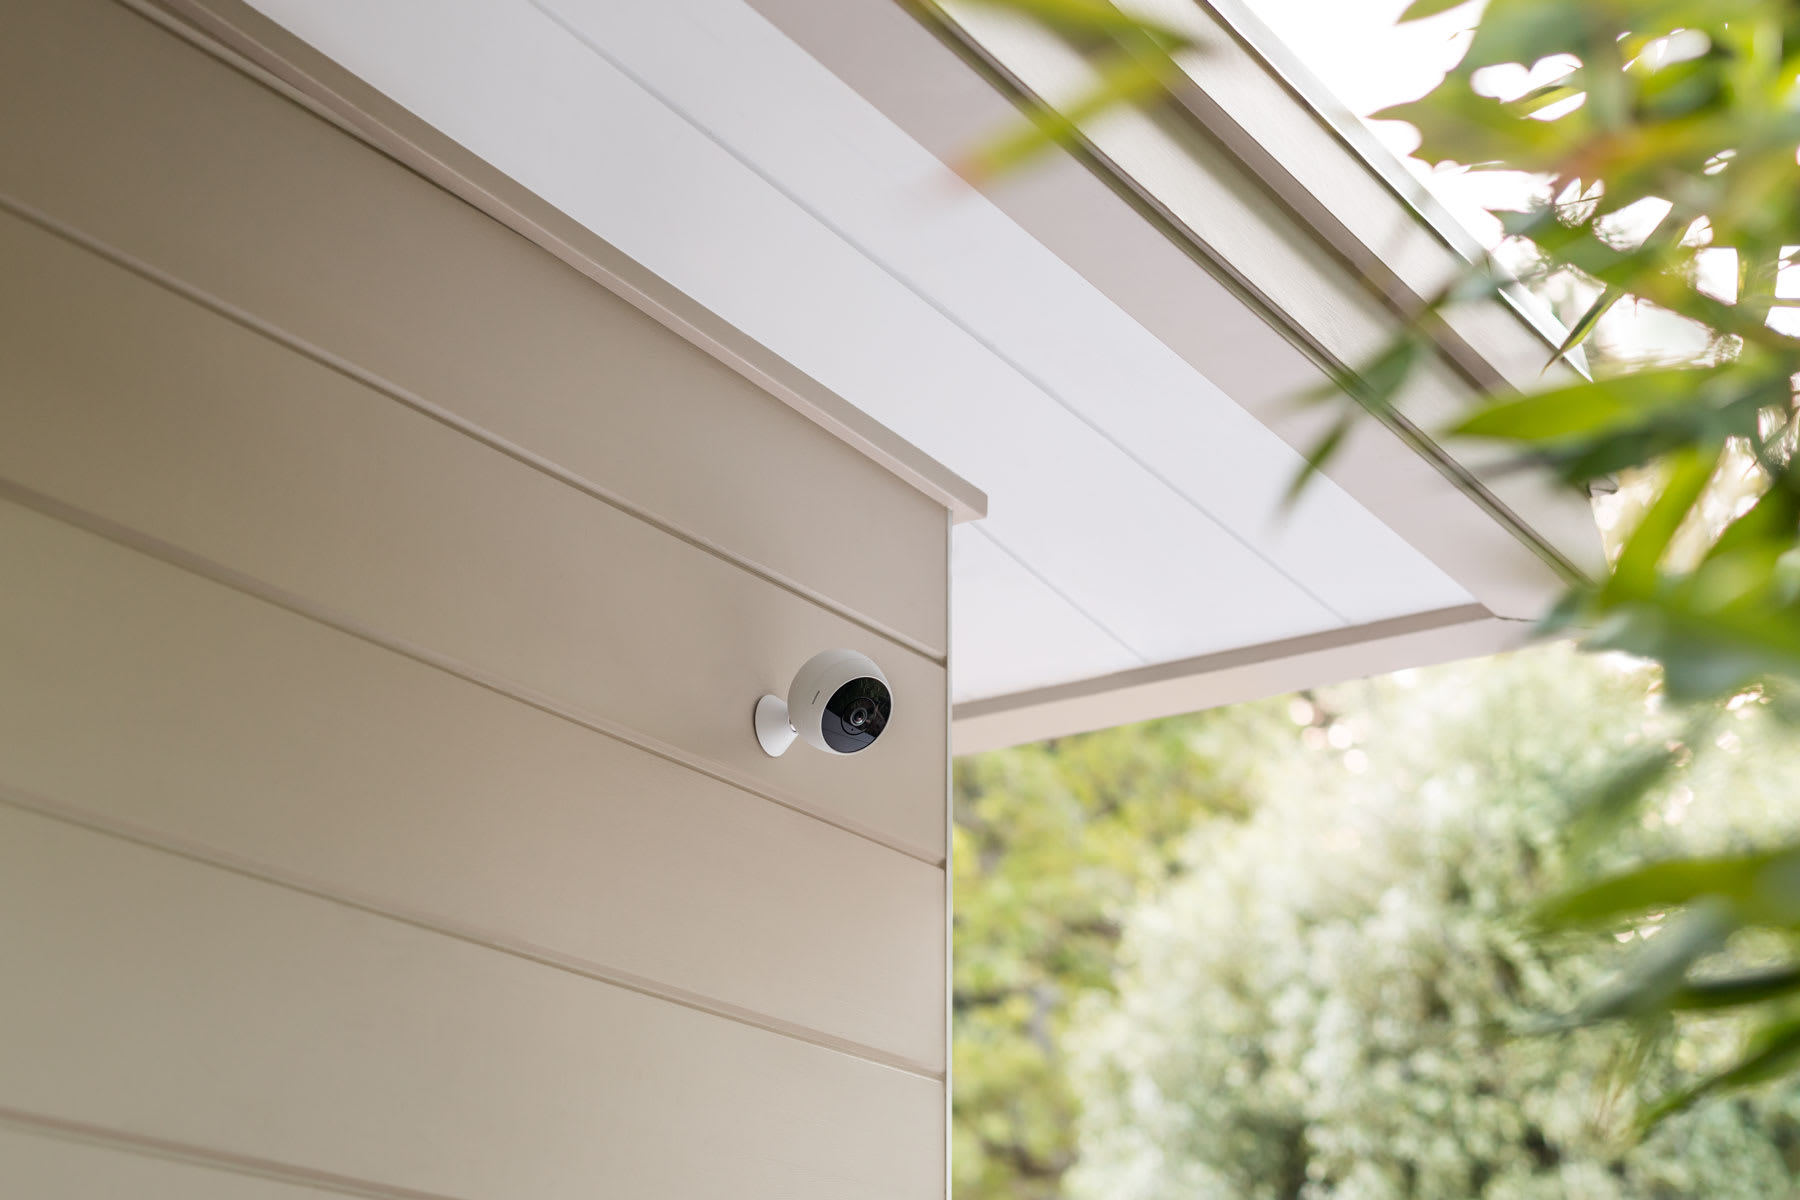 Logitech's human-spotting Nest cam rival works outdoors